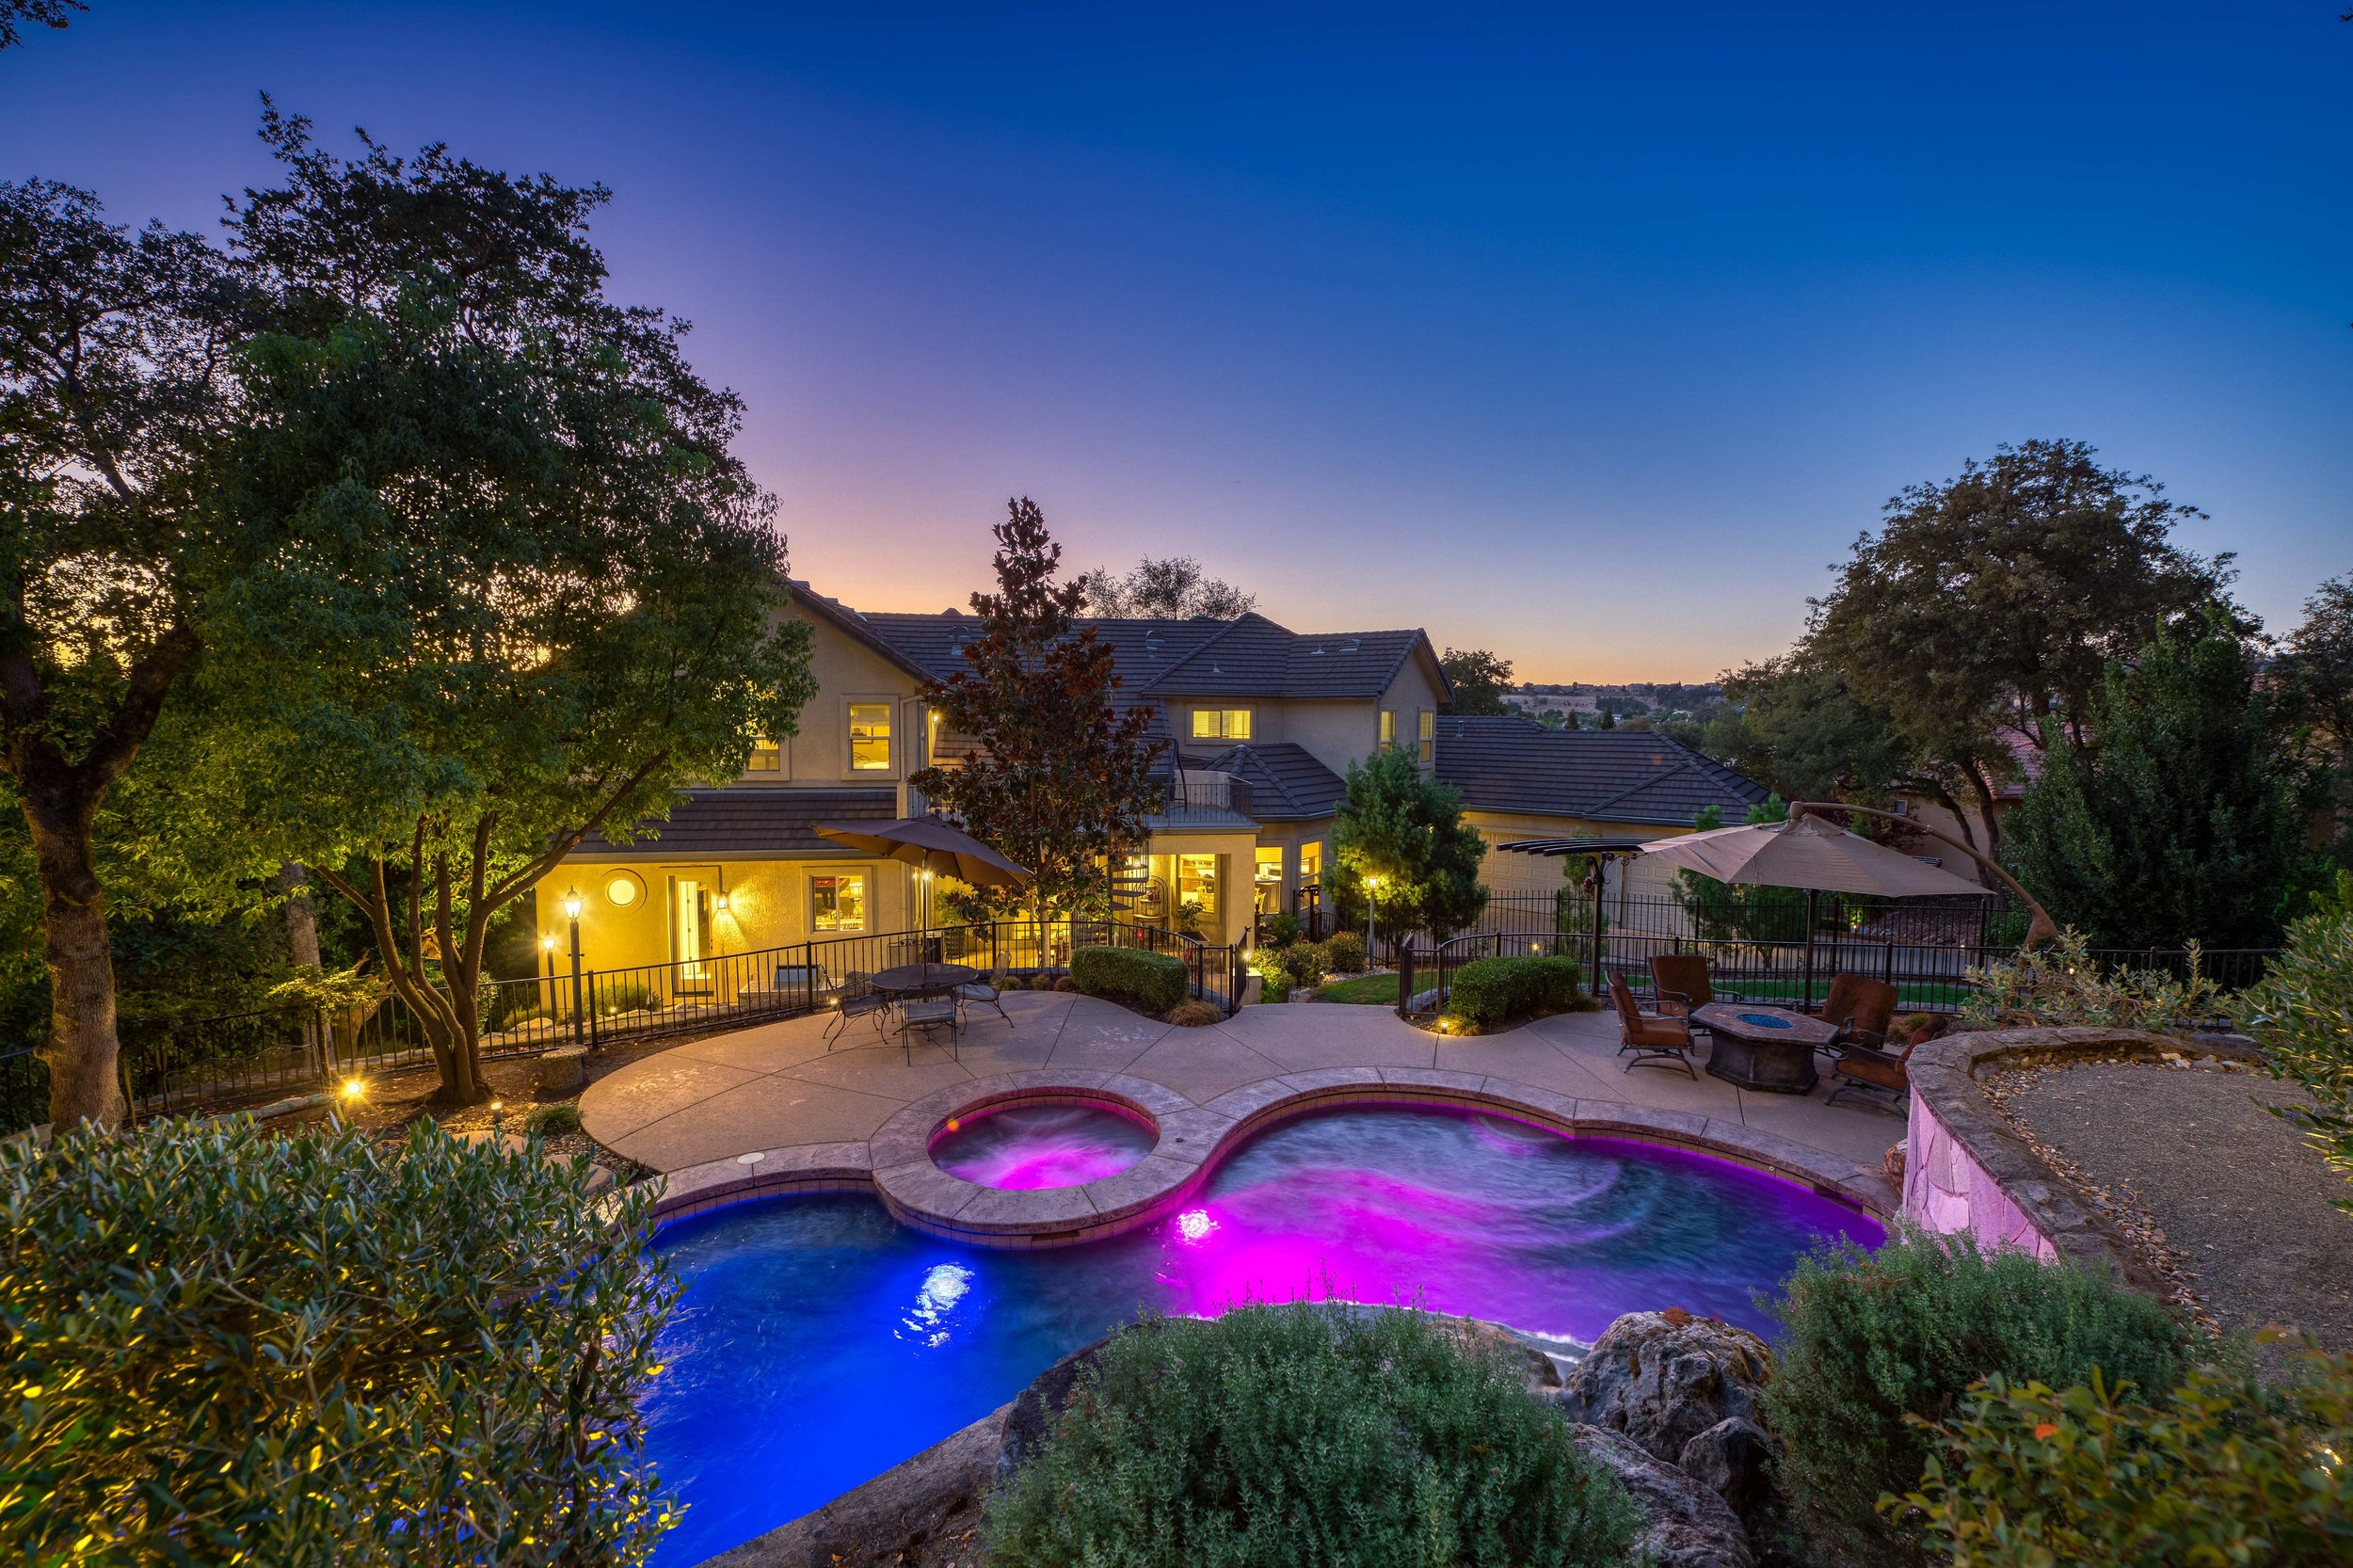 2330 Clubhouse Drive - Twilight - 9.jpg